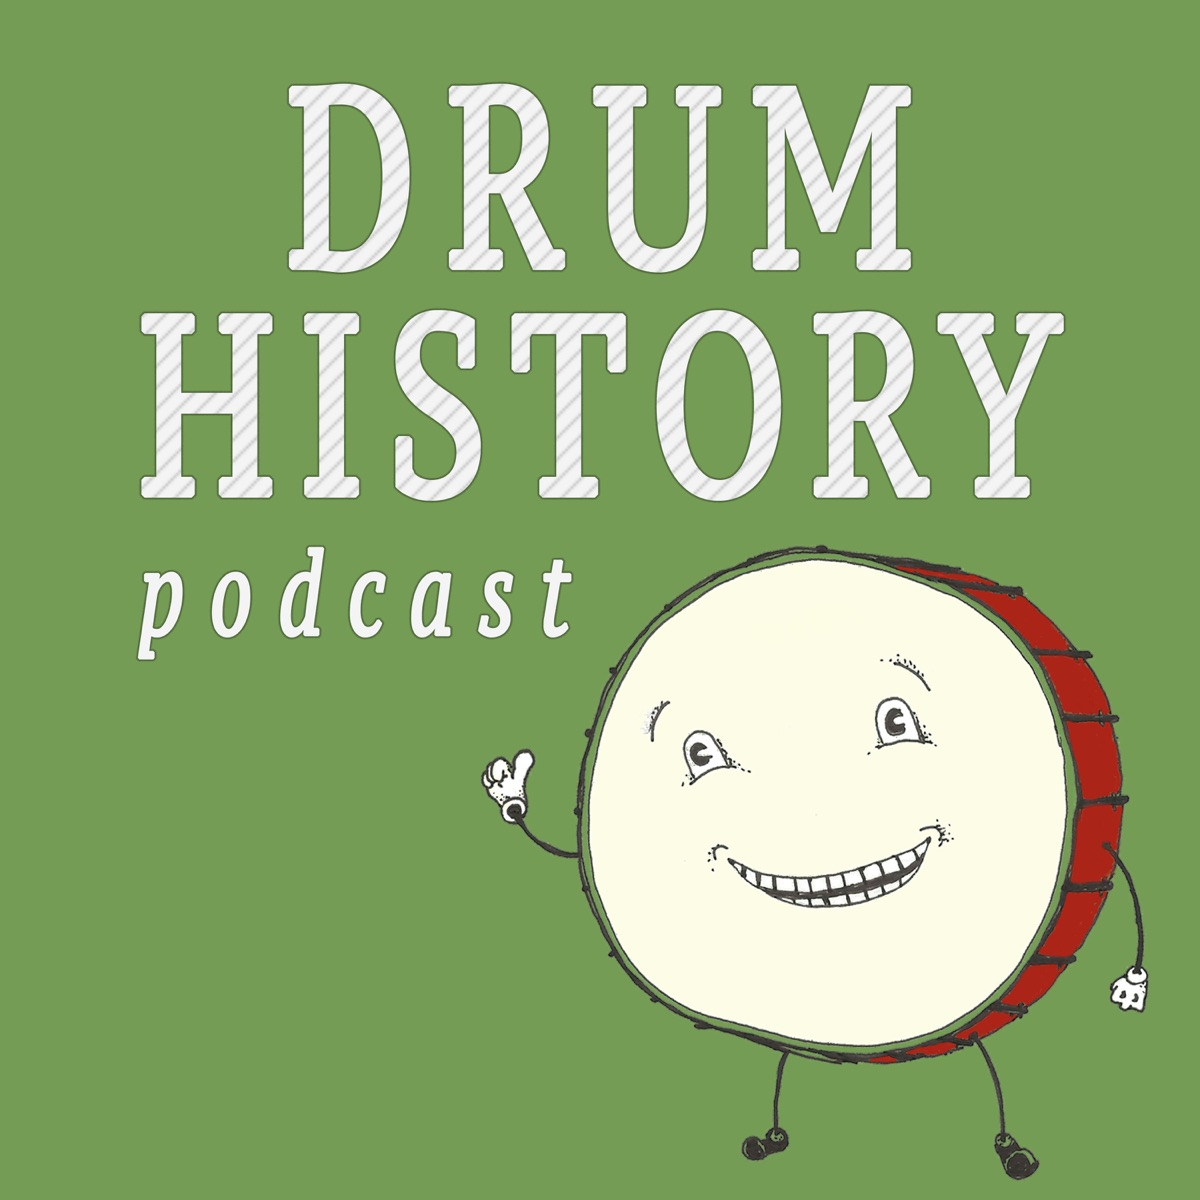 Sympathy for the Drummer: The Charlie Watts Episode with Mike Edison